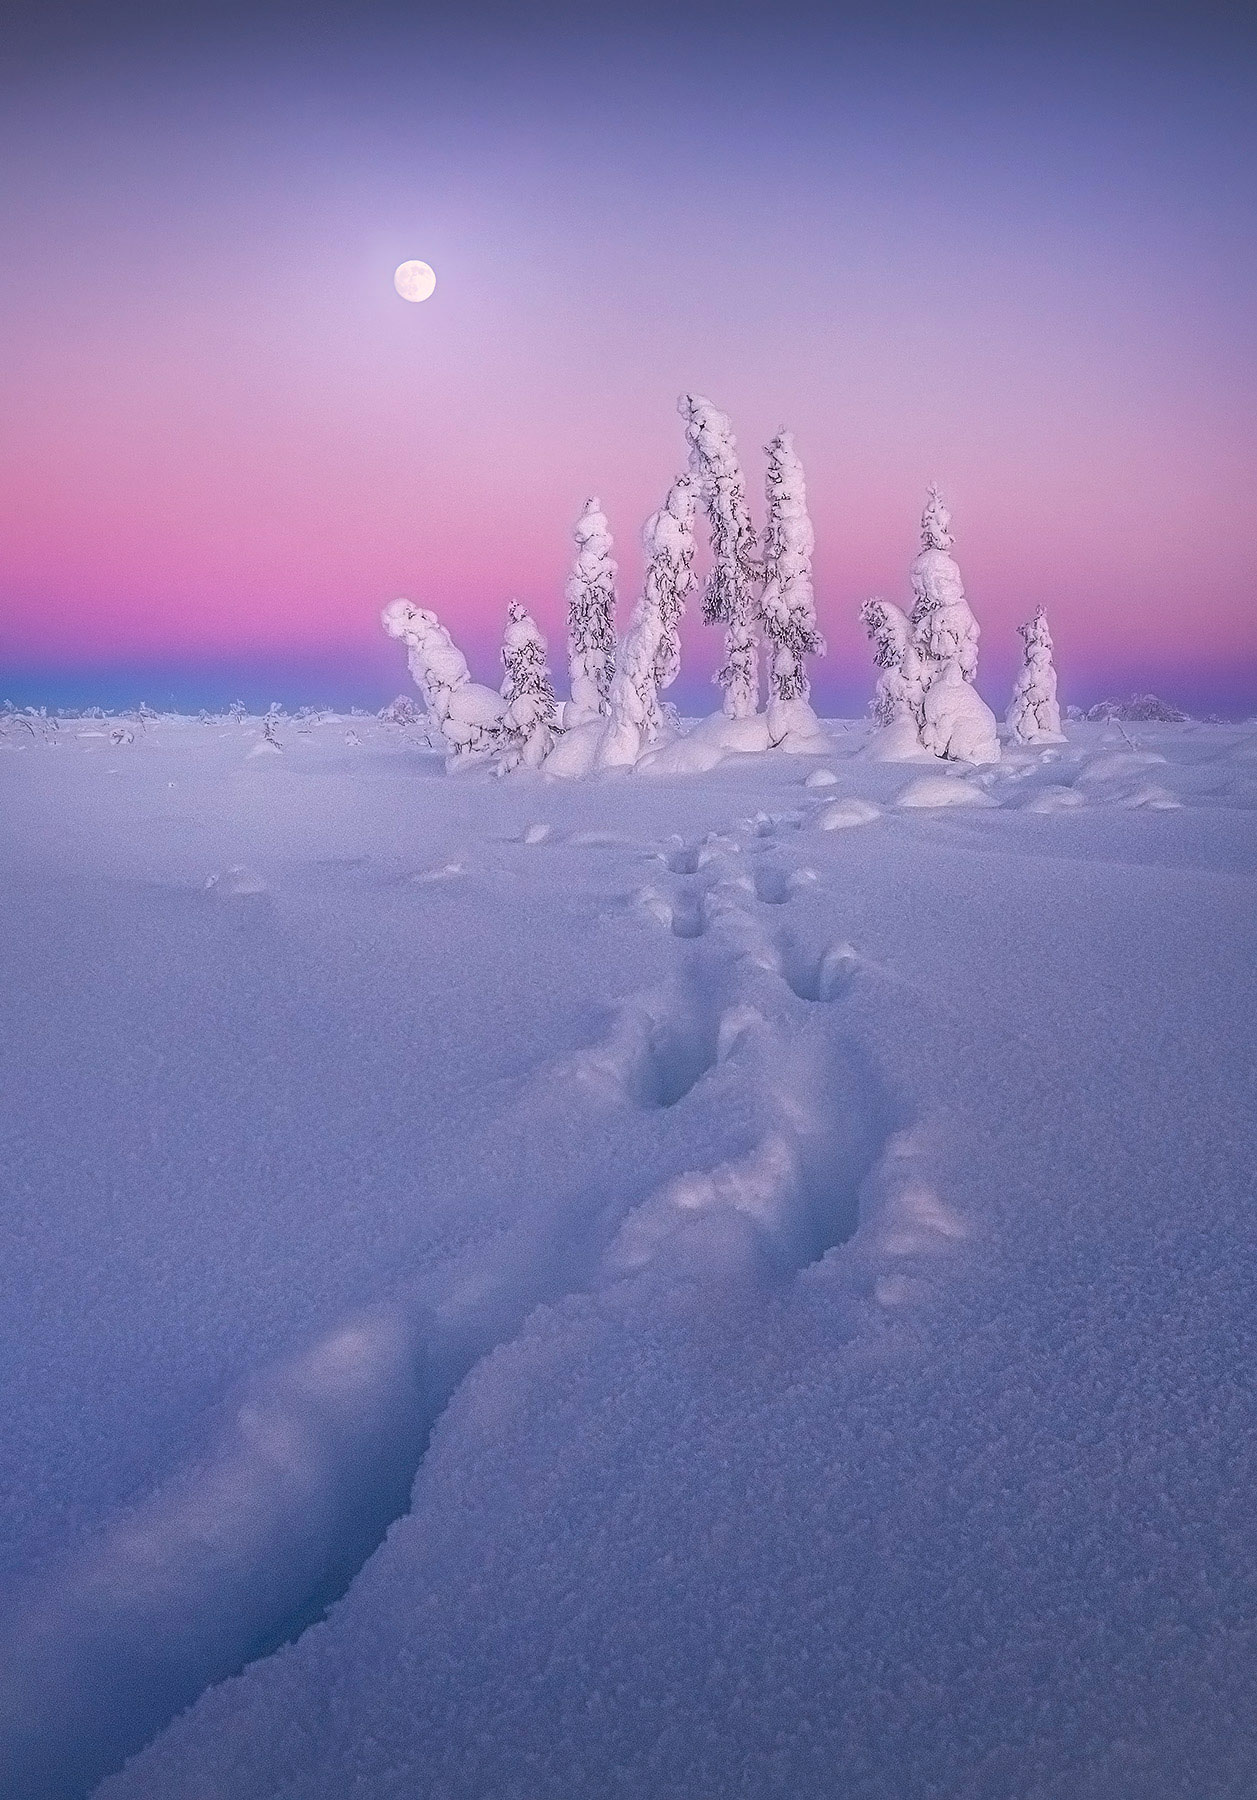 Moonrise at twilight over rime-covered trees in the Alaskan winter with moose tracks leading the way